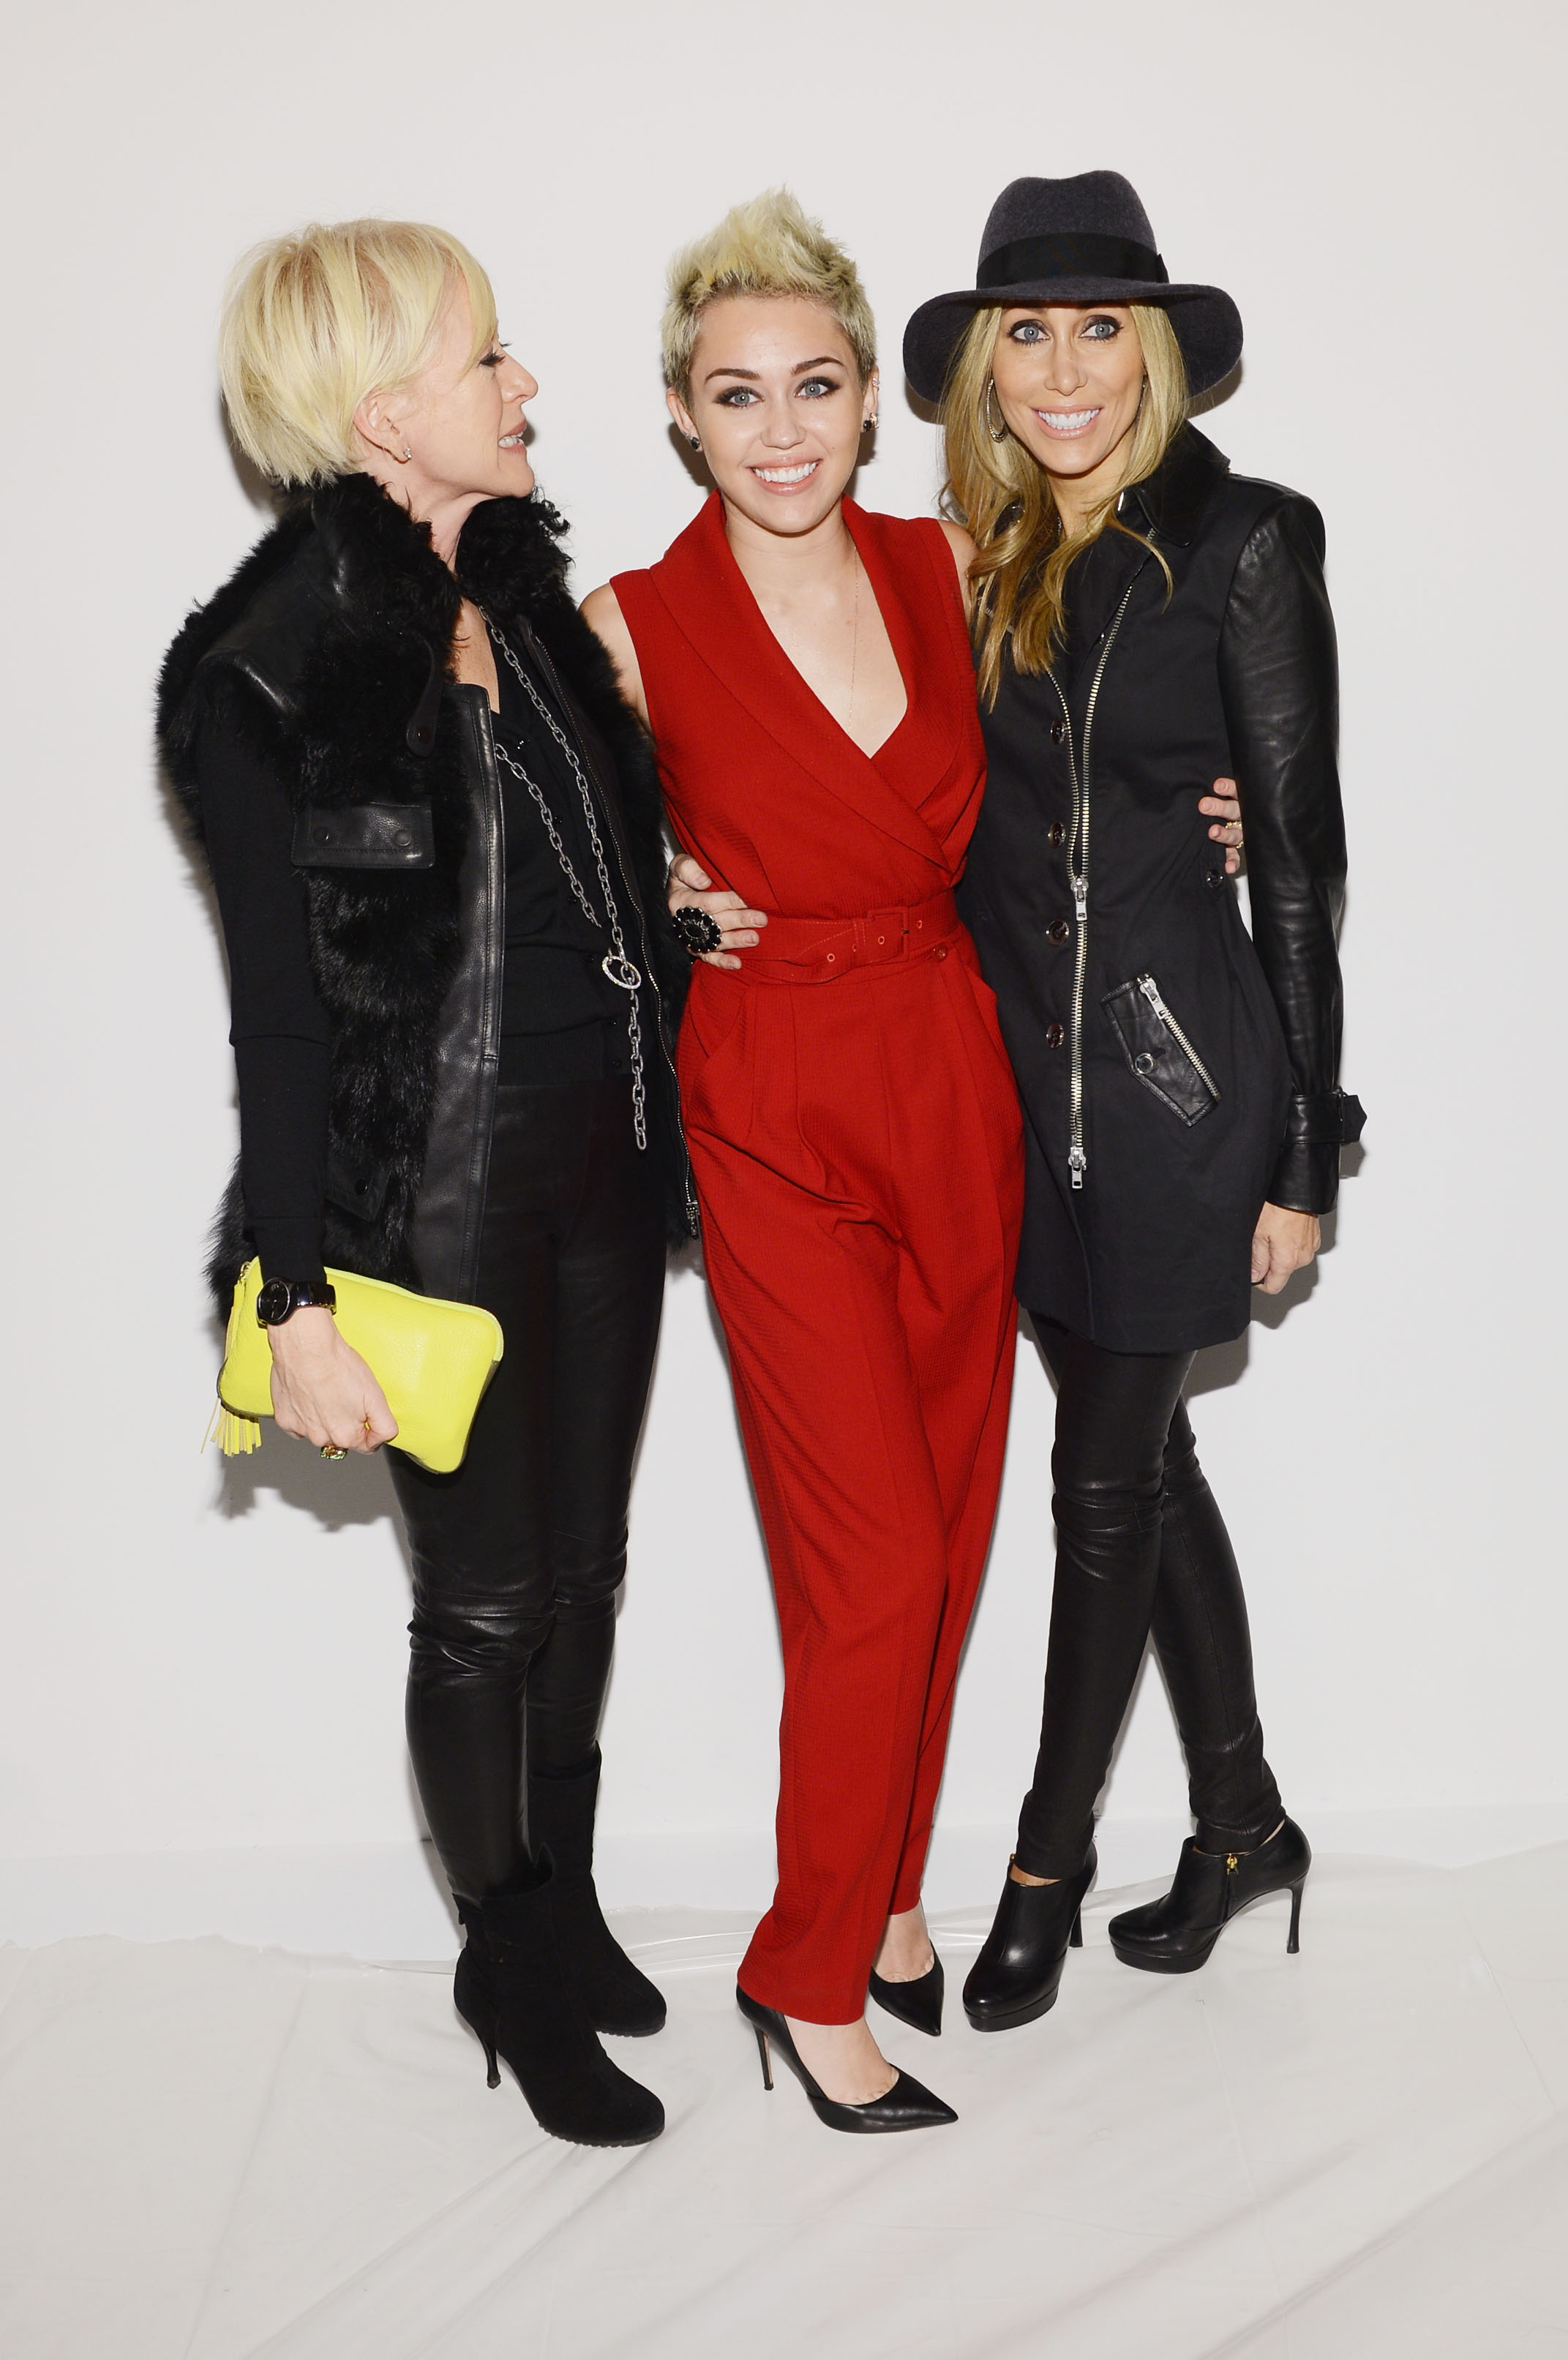 (Photo by Larry Busacca/Getty Images for Mercedes-Benz Fashion Week)